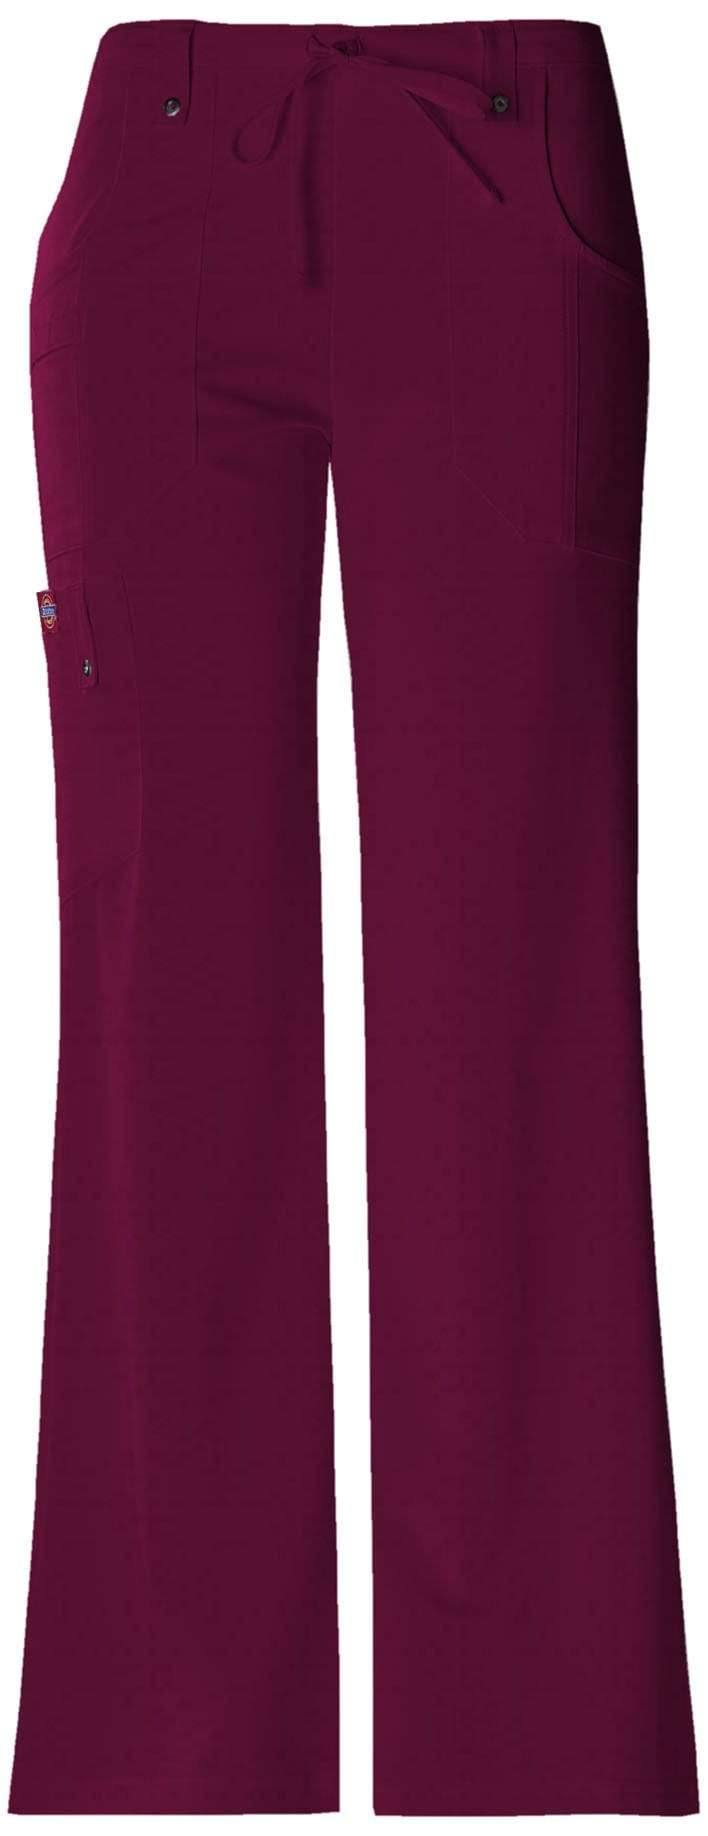 Dickies Women's Xtreme Stretch Drawstring Flare Scrub Pants